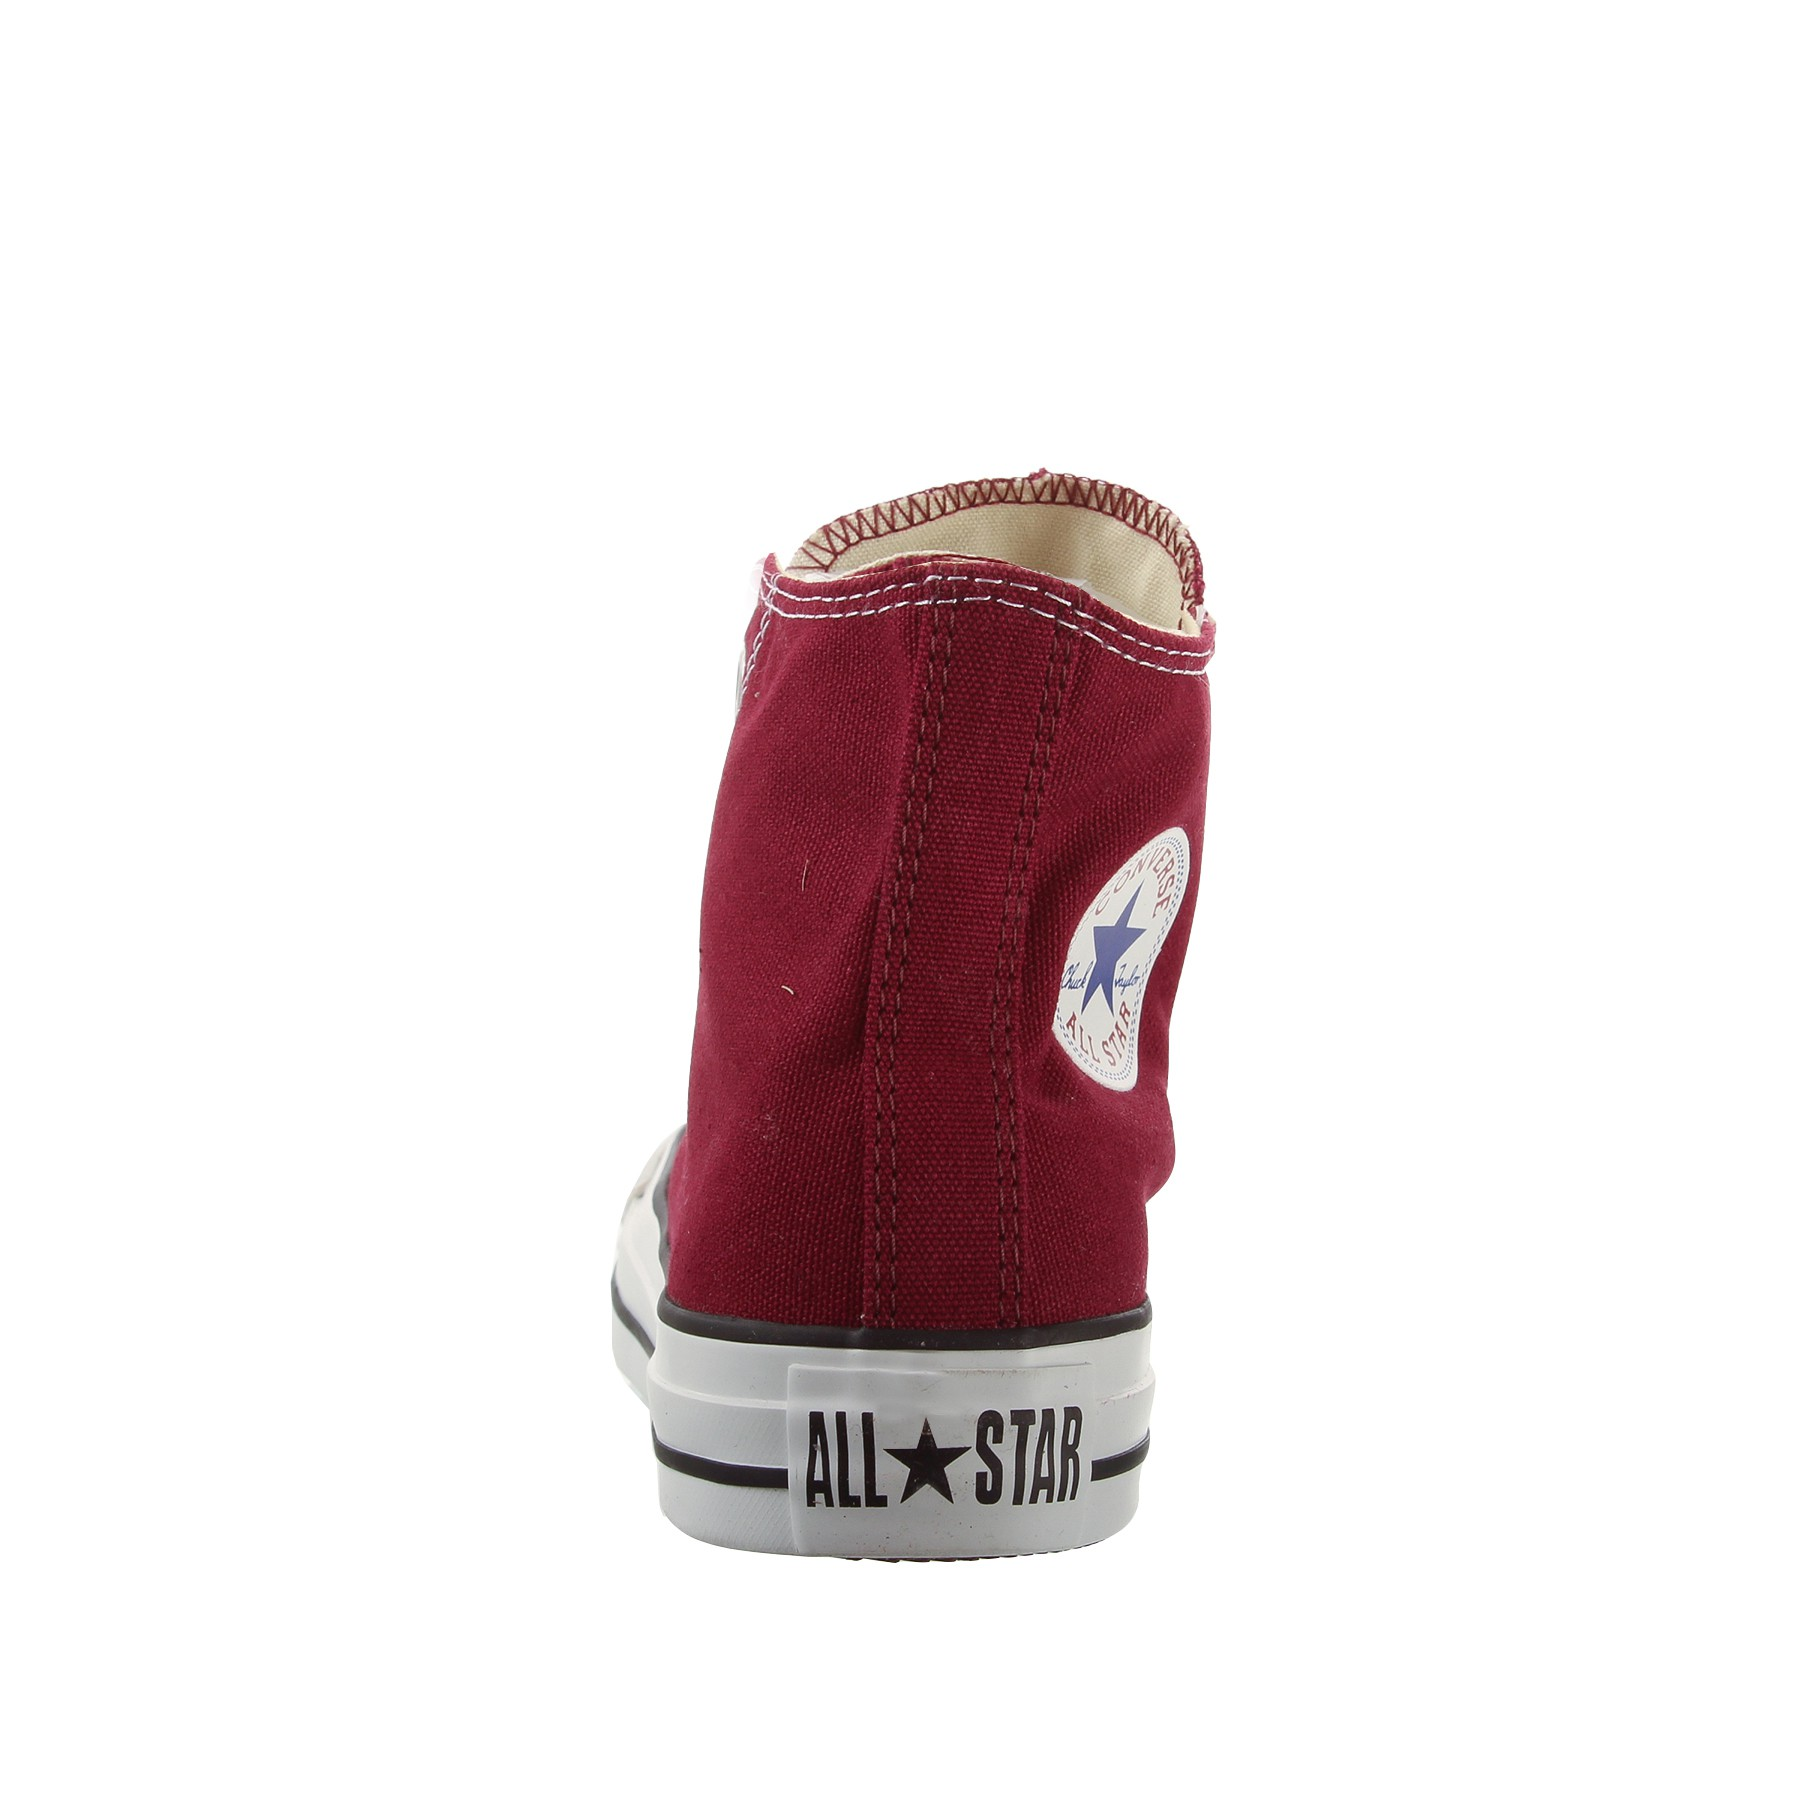 M9613 CT CHUCK TAYLOR AS CORE/MAROON Bild https://cdn03.plentymarkets.com/zsy4vjx32p87/item/images/4267/full/M9613-ama-06.JPG